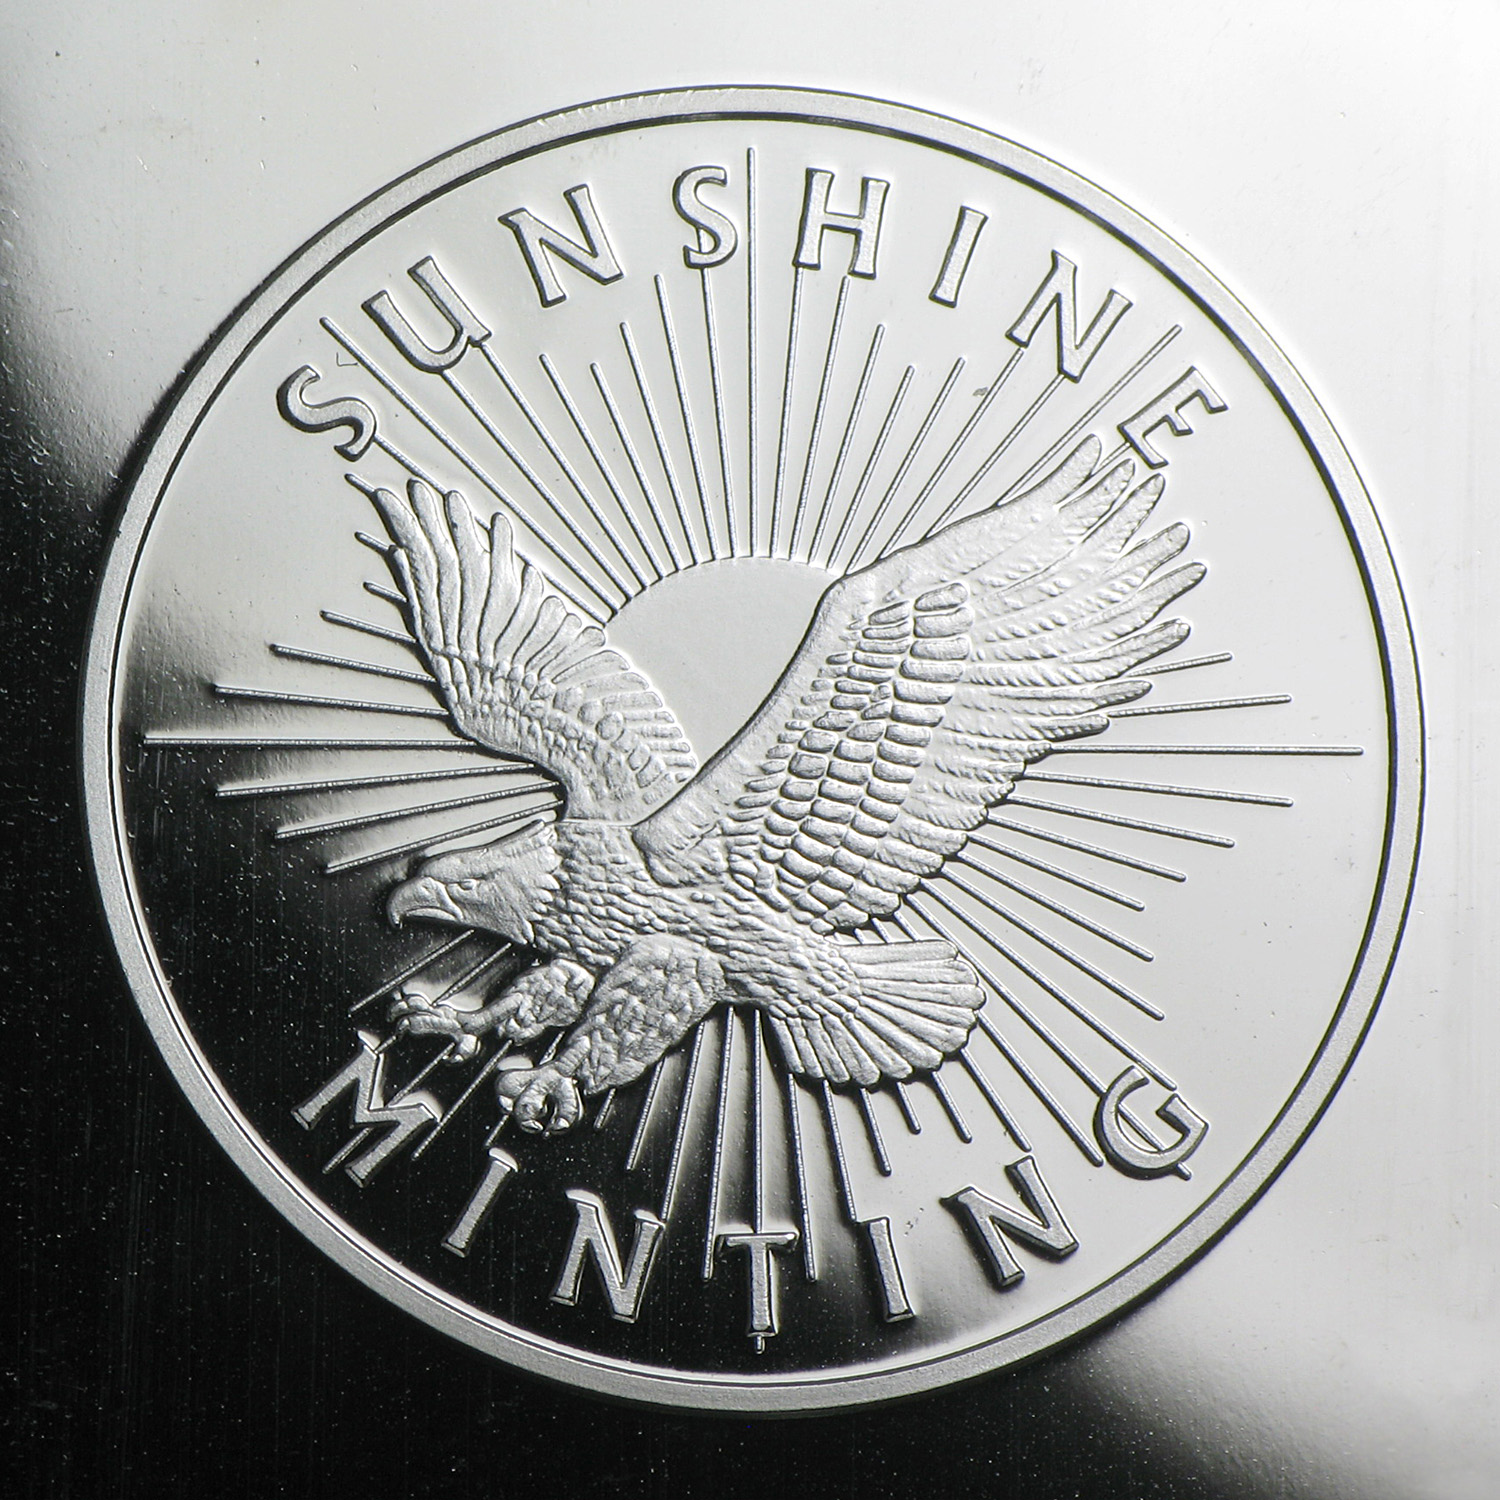 5 oz Silver Bars - Sunshine (V2)